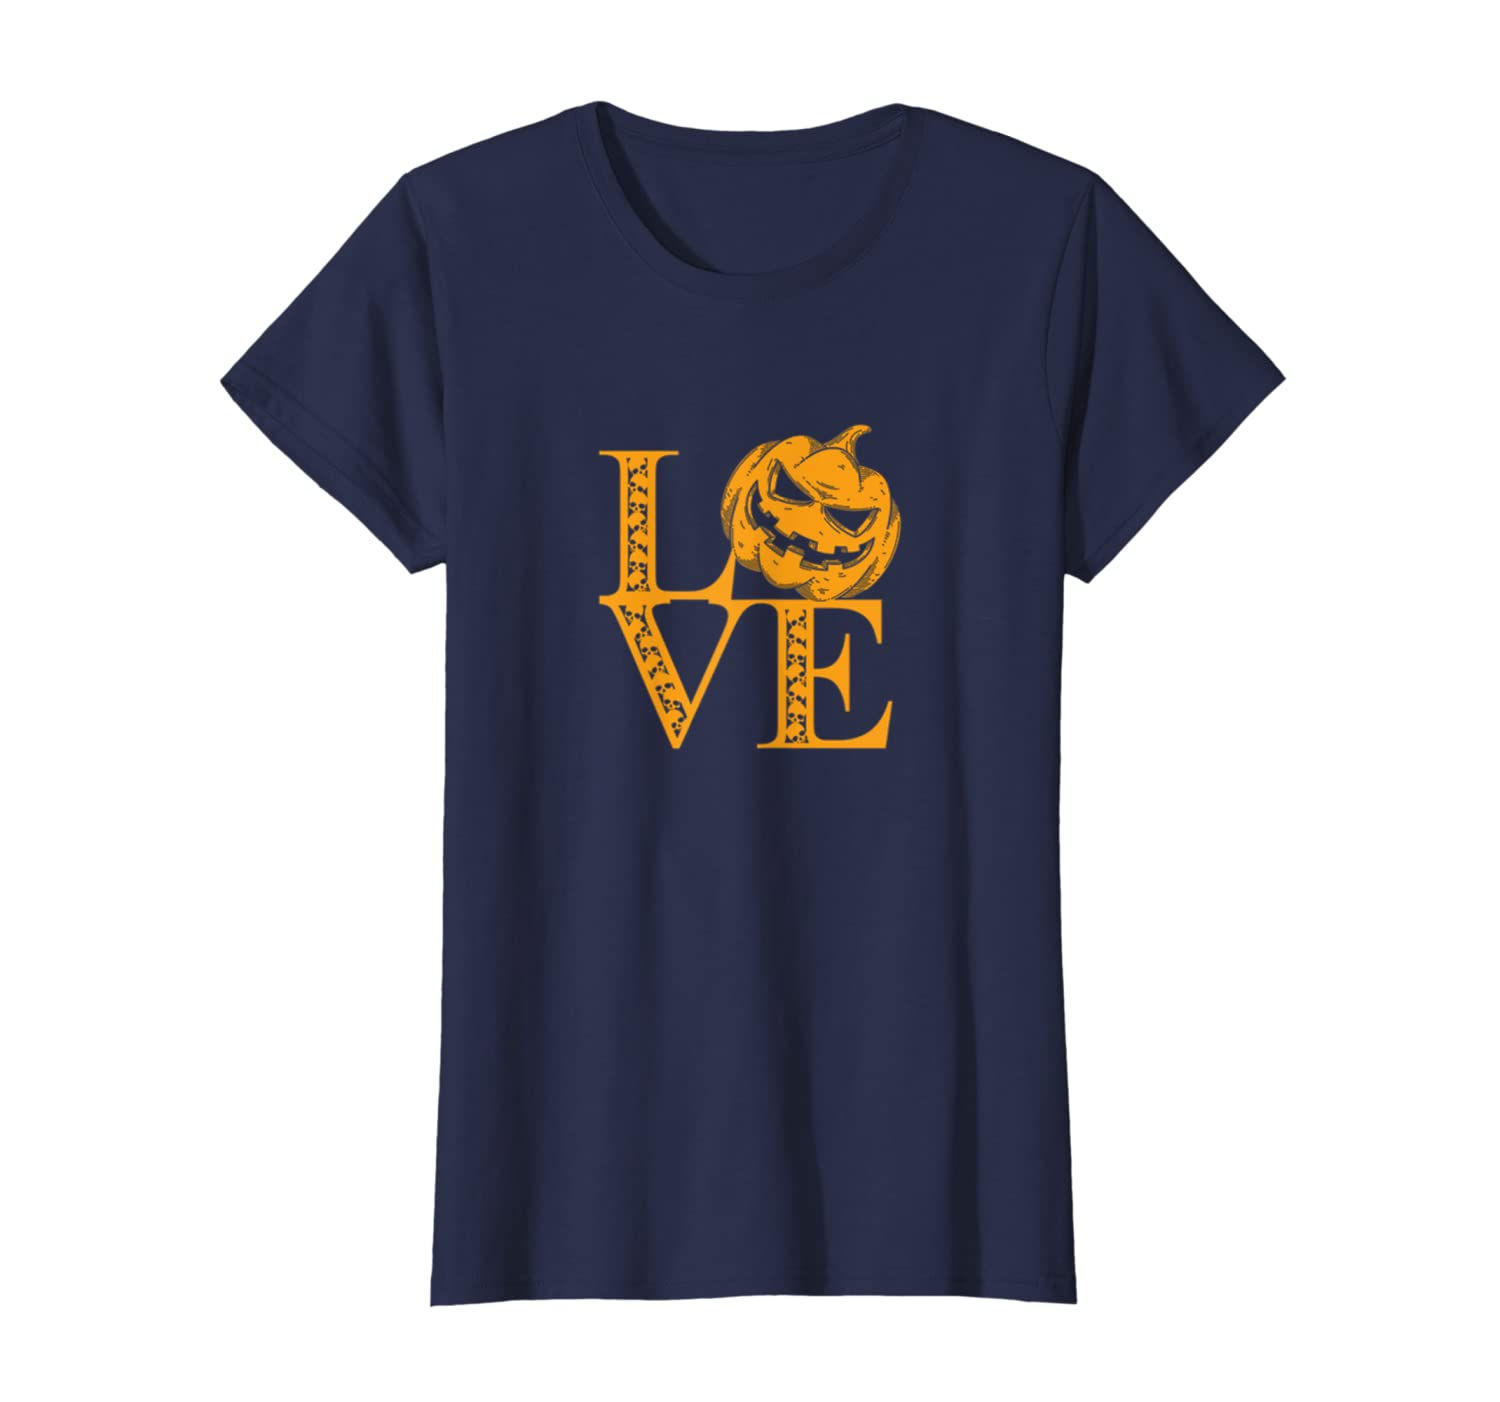 LOVE HALLOWEEN Jack O' Lantern and skull quote t-shirt